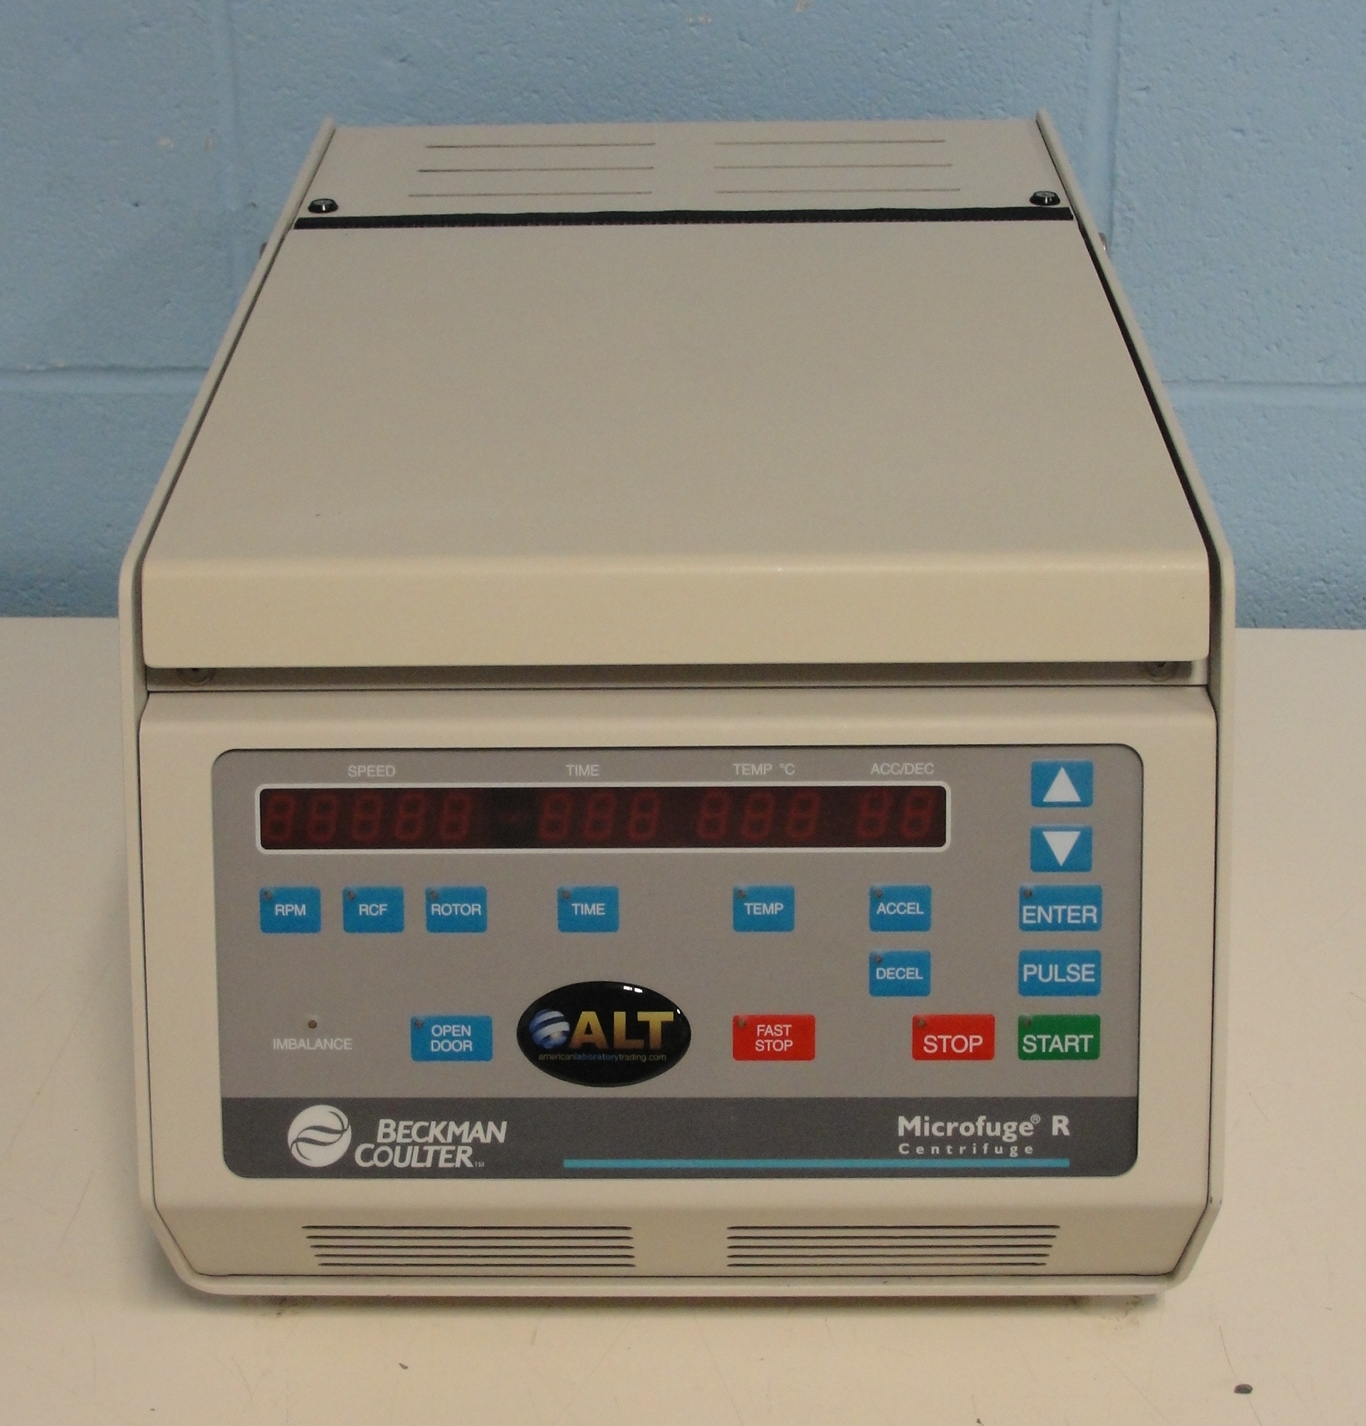 Beckman Coulter Microfuge R Centrifuge with F241.5 Rotor (24-place rotor) Image